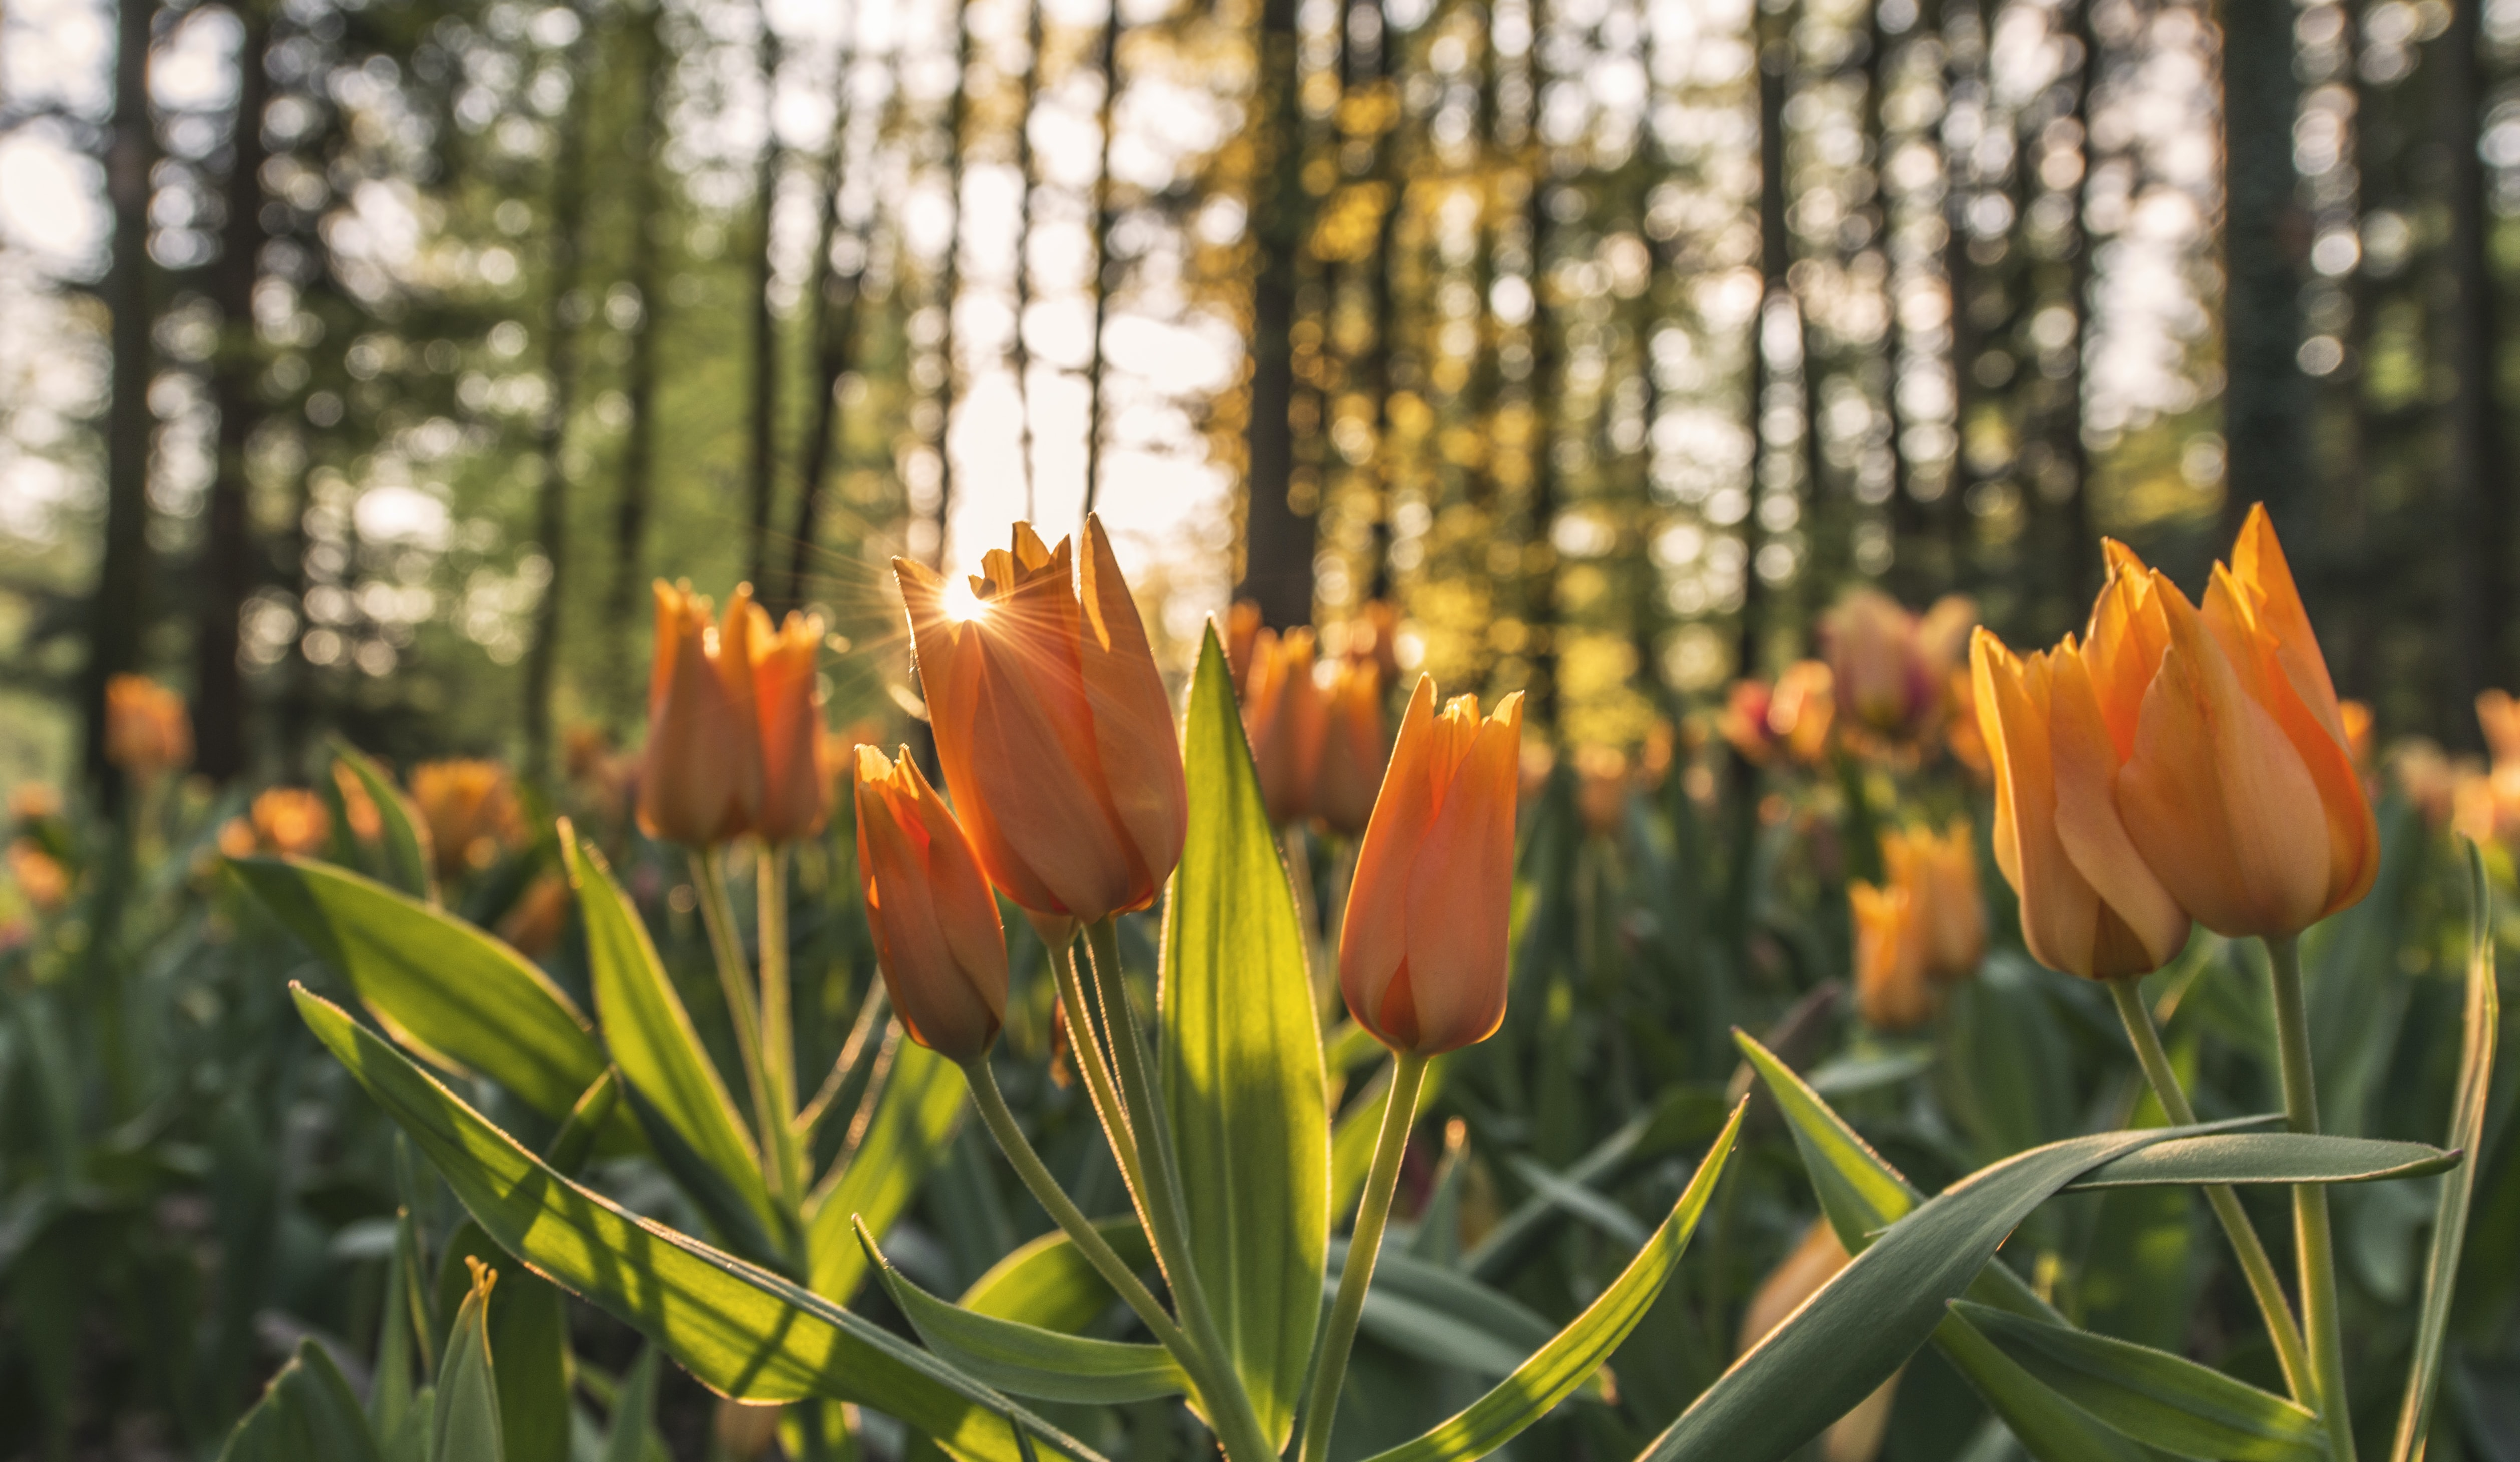 Sunset shot of orange tulip flowers in nature in forest in Spring